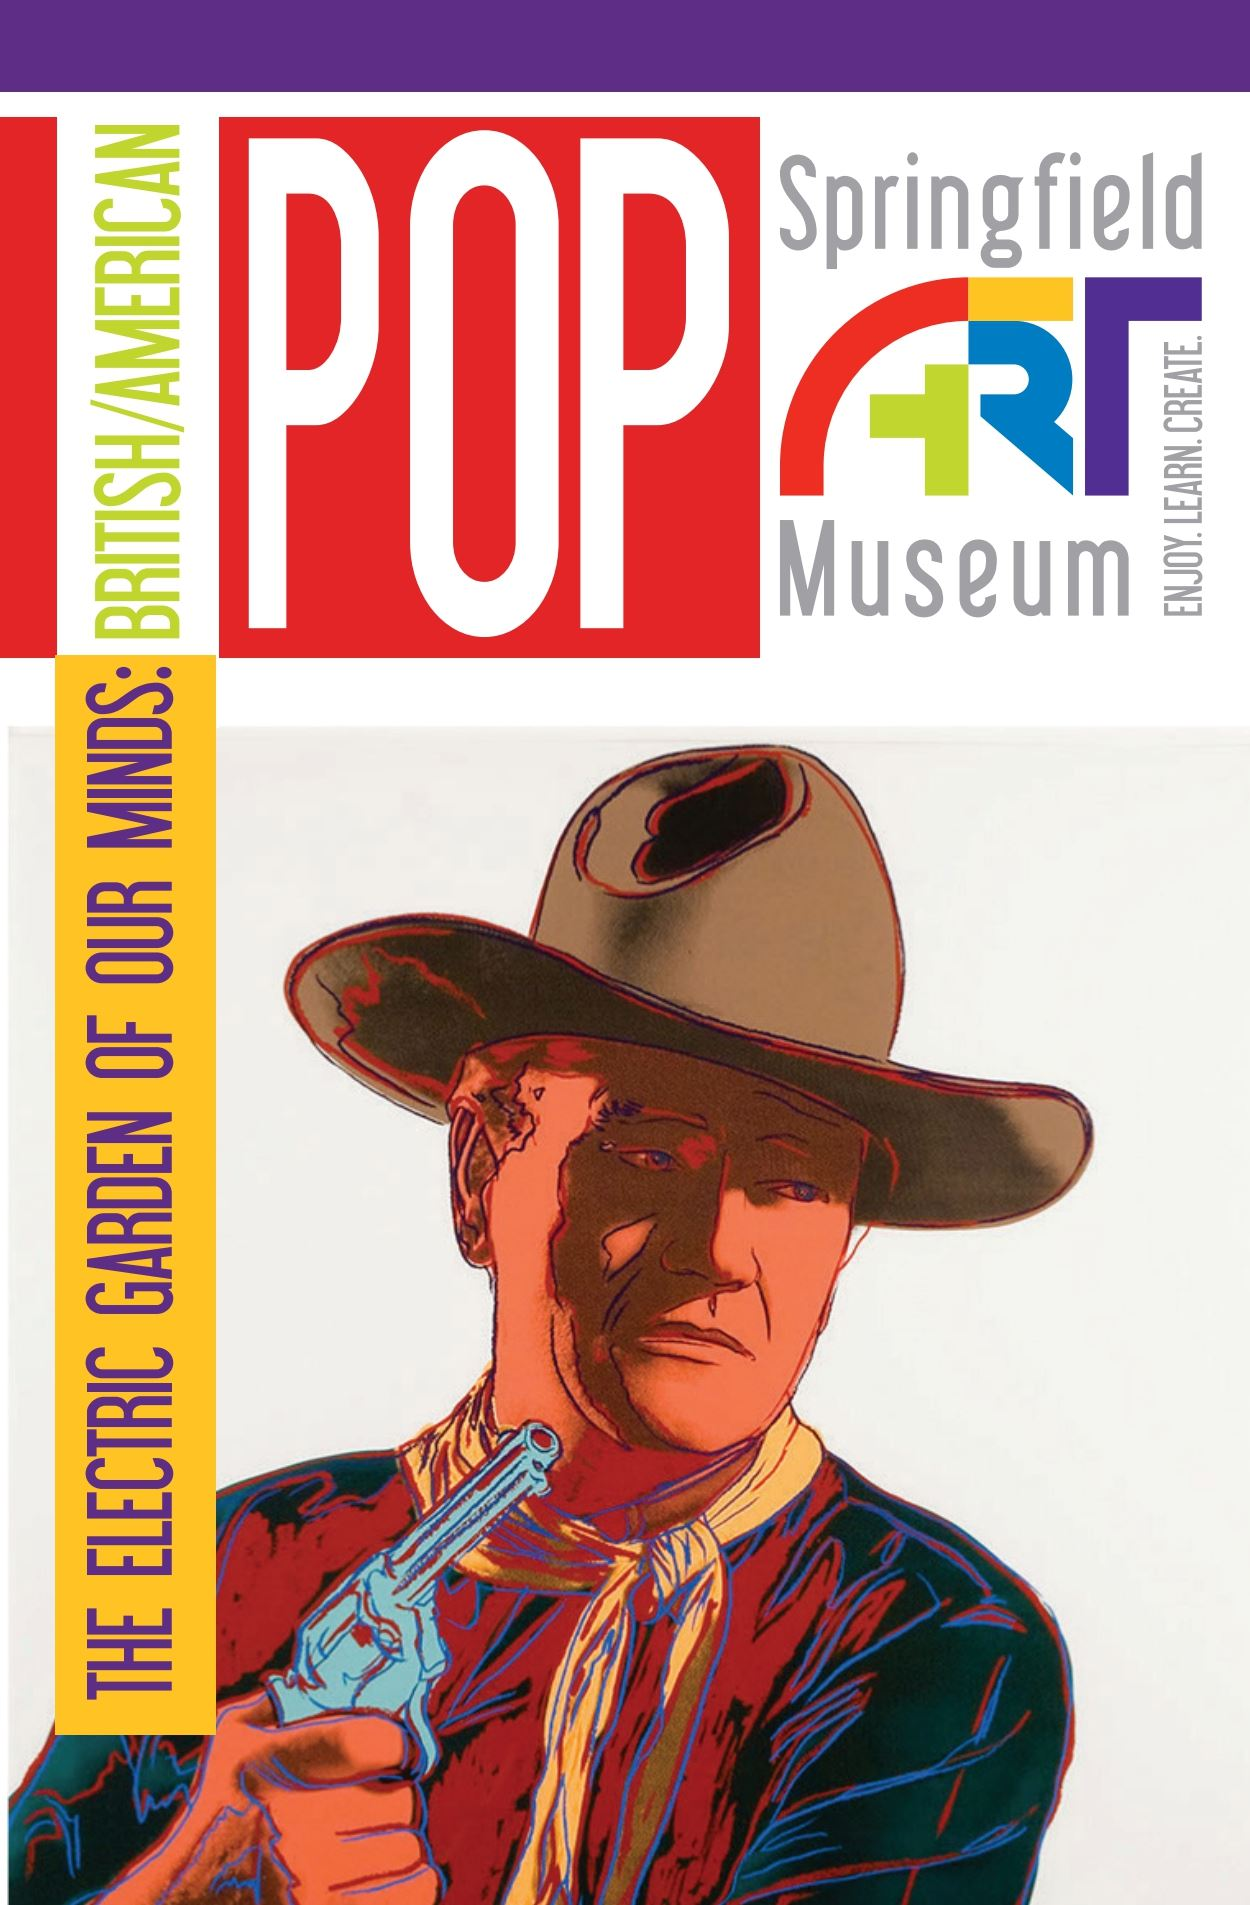 Andy Warhol's bold, colorful portrait of John Wayne